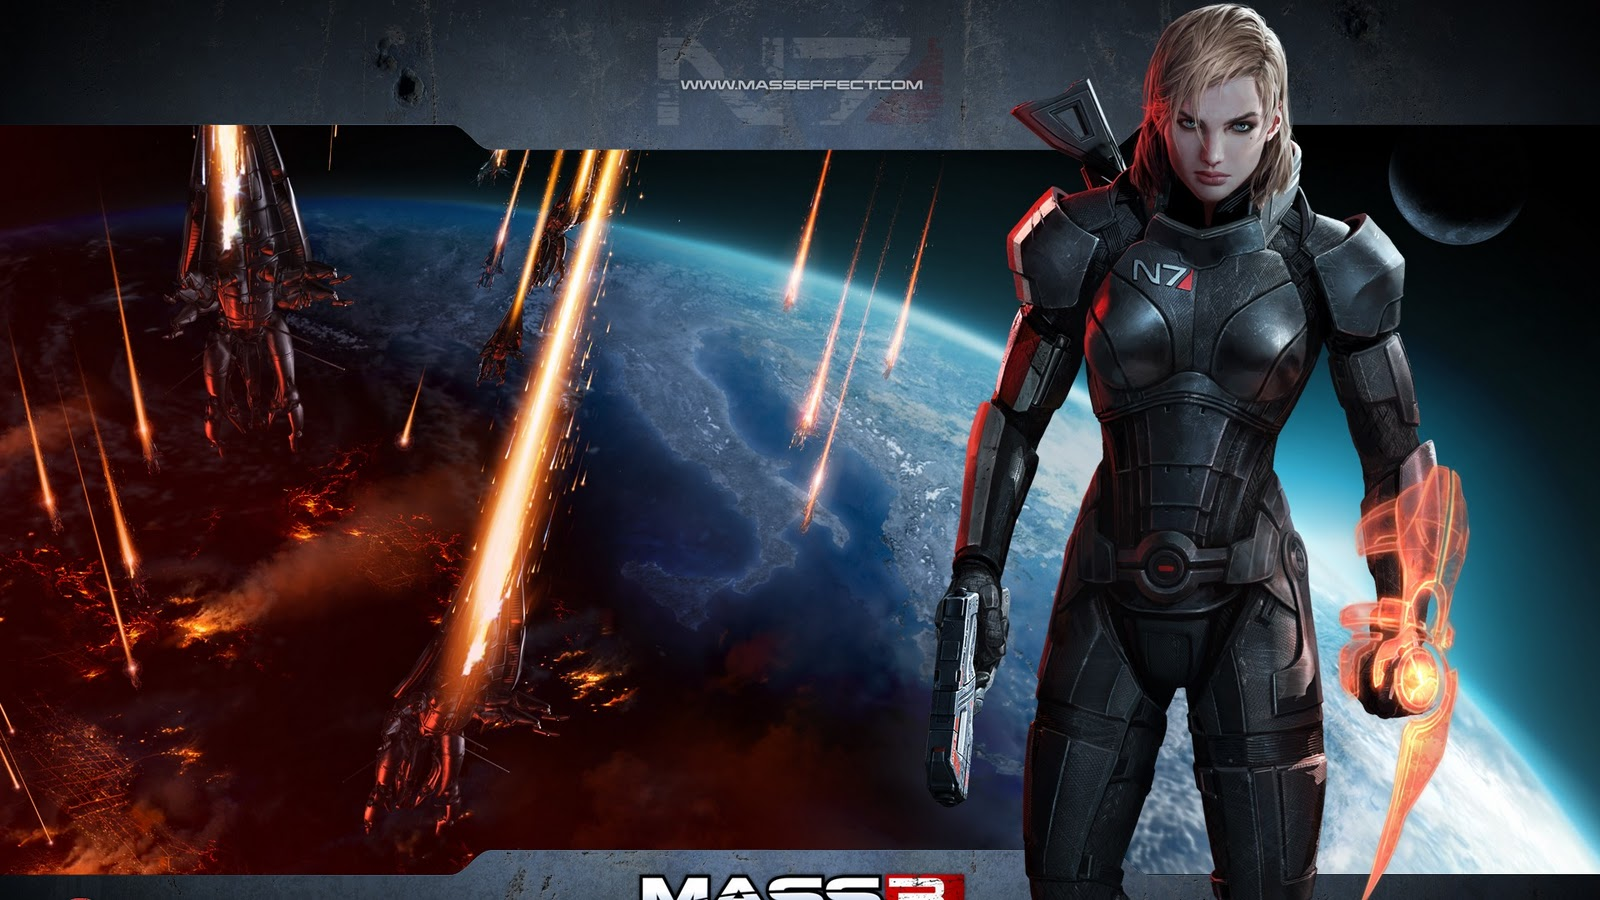 wallpapers photo art mass effect 3 hd wallpapers game